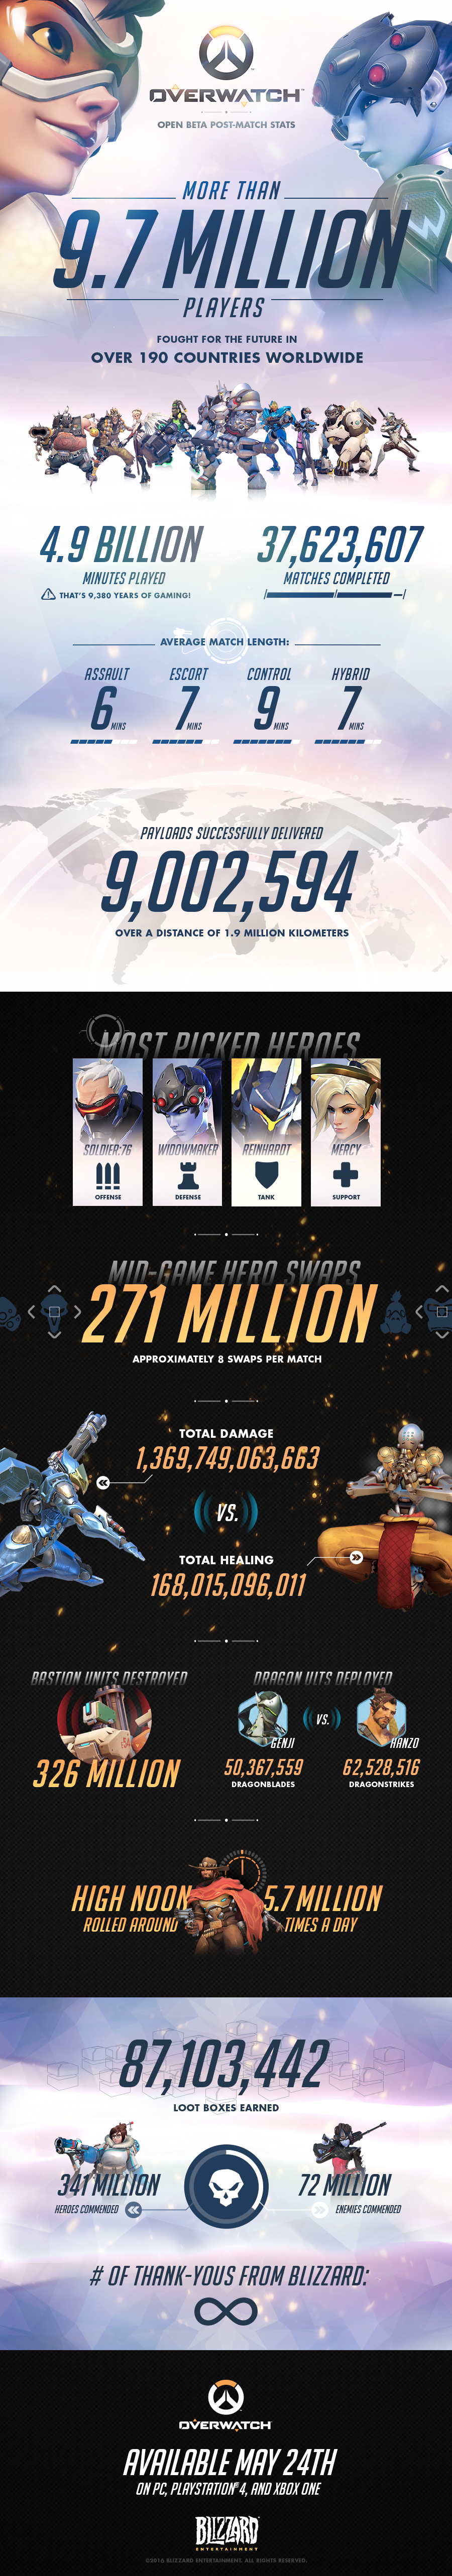 Overwatch Open Beta Stats